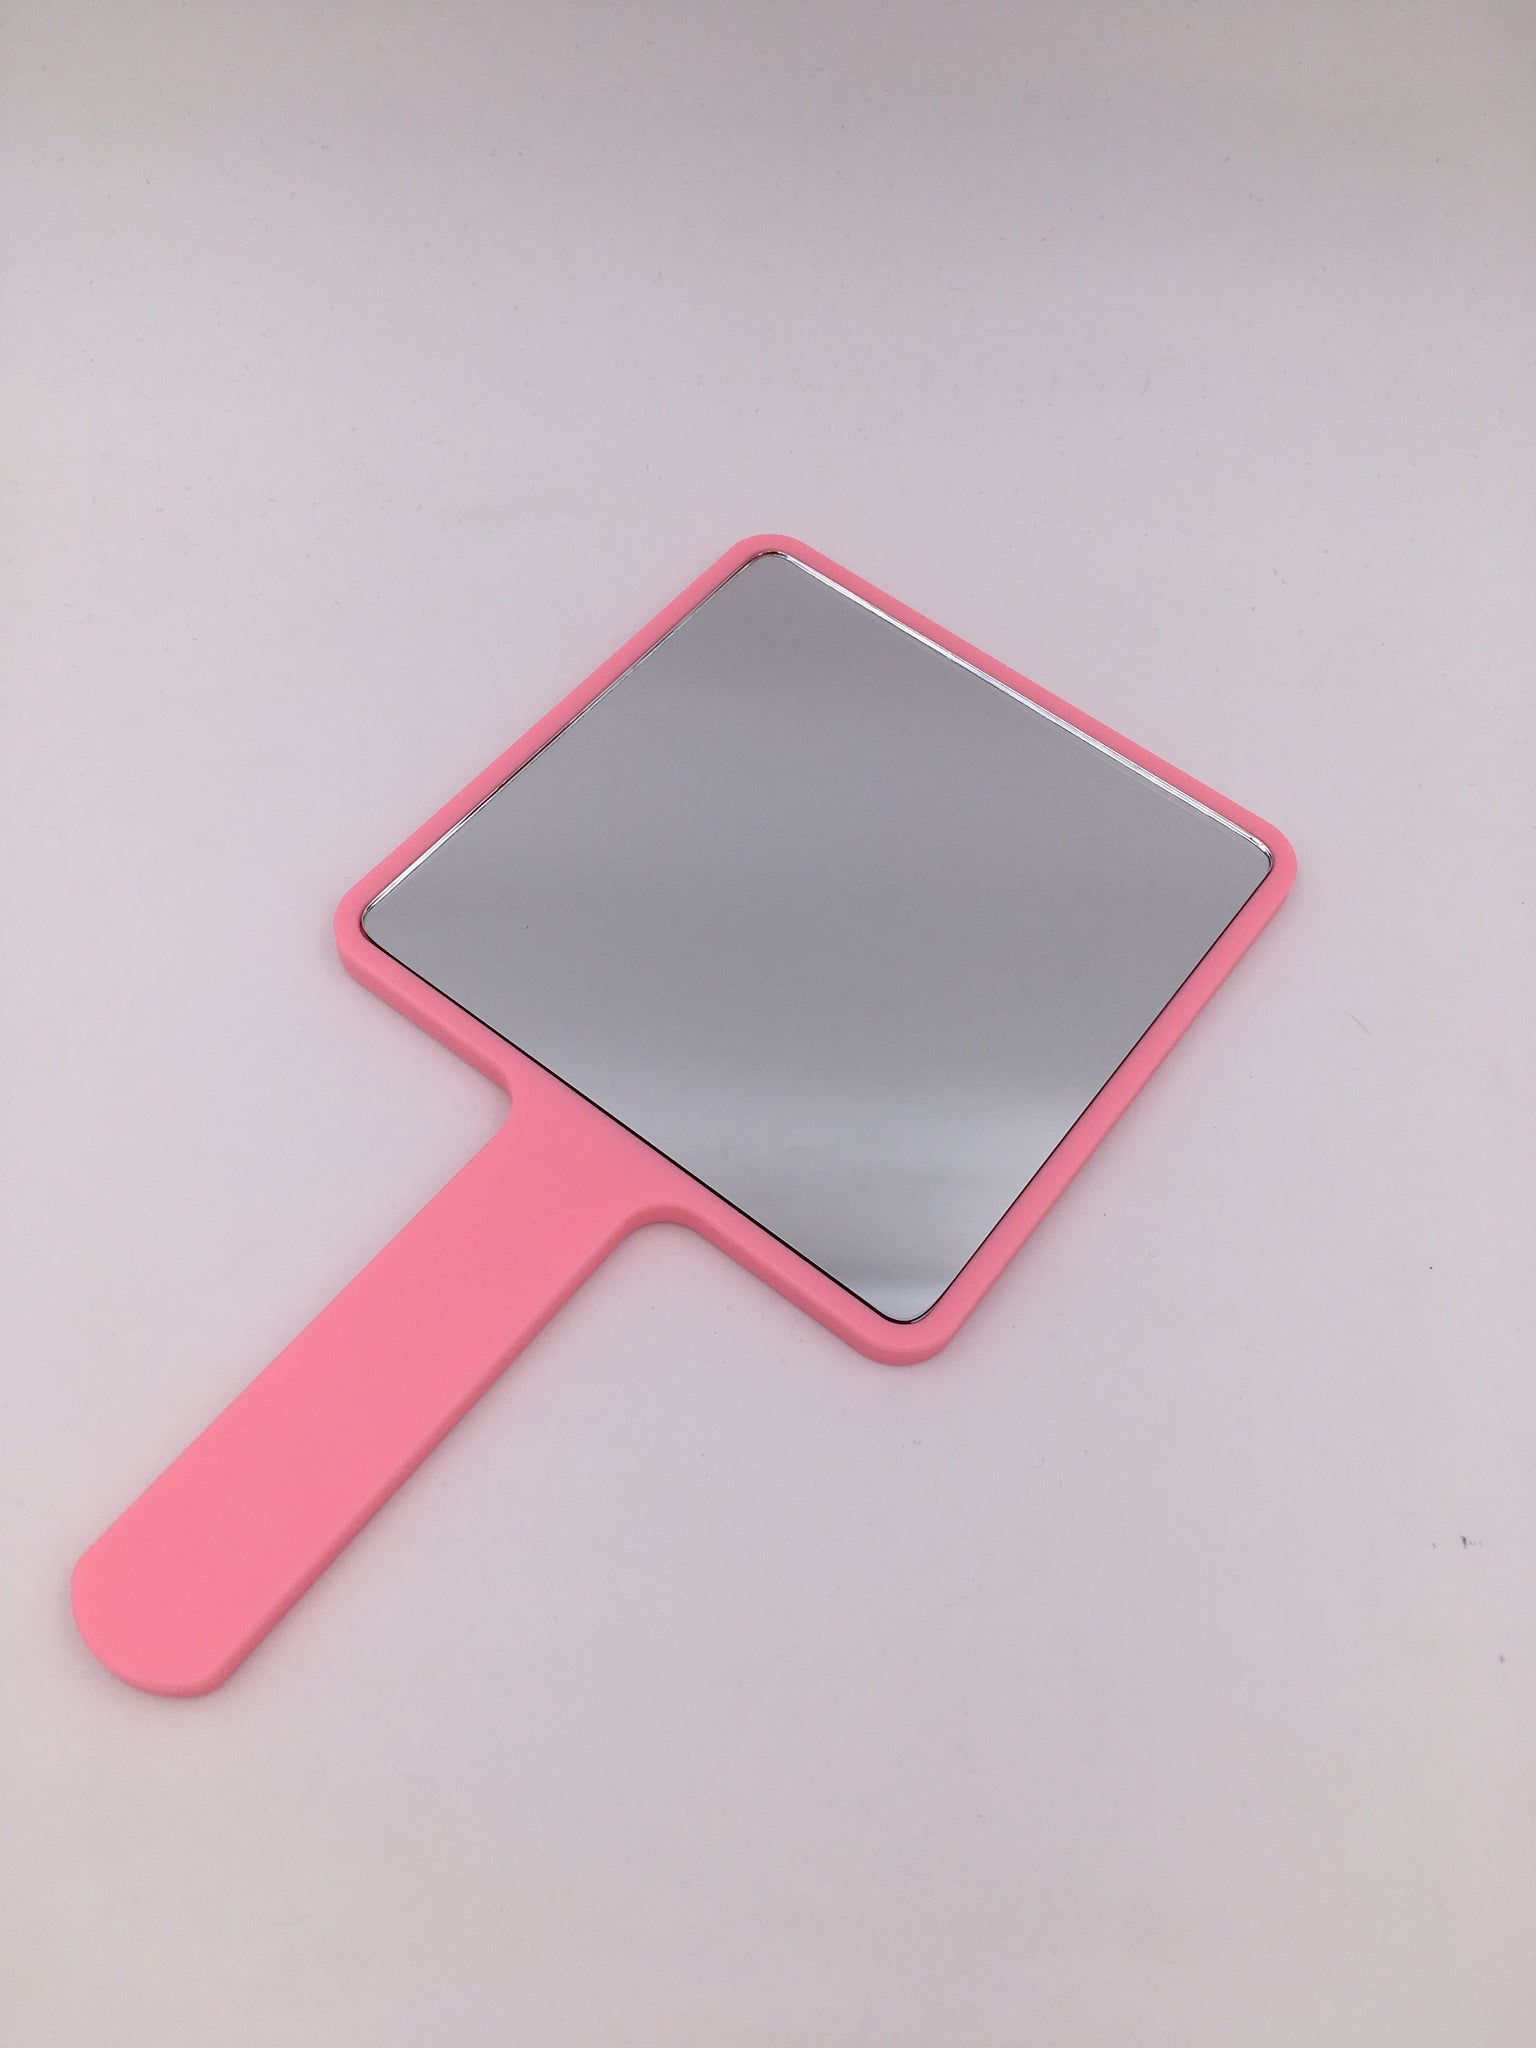 O.HSNYIU Mirrors Use A Hand Mirror At Home